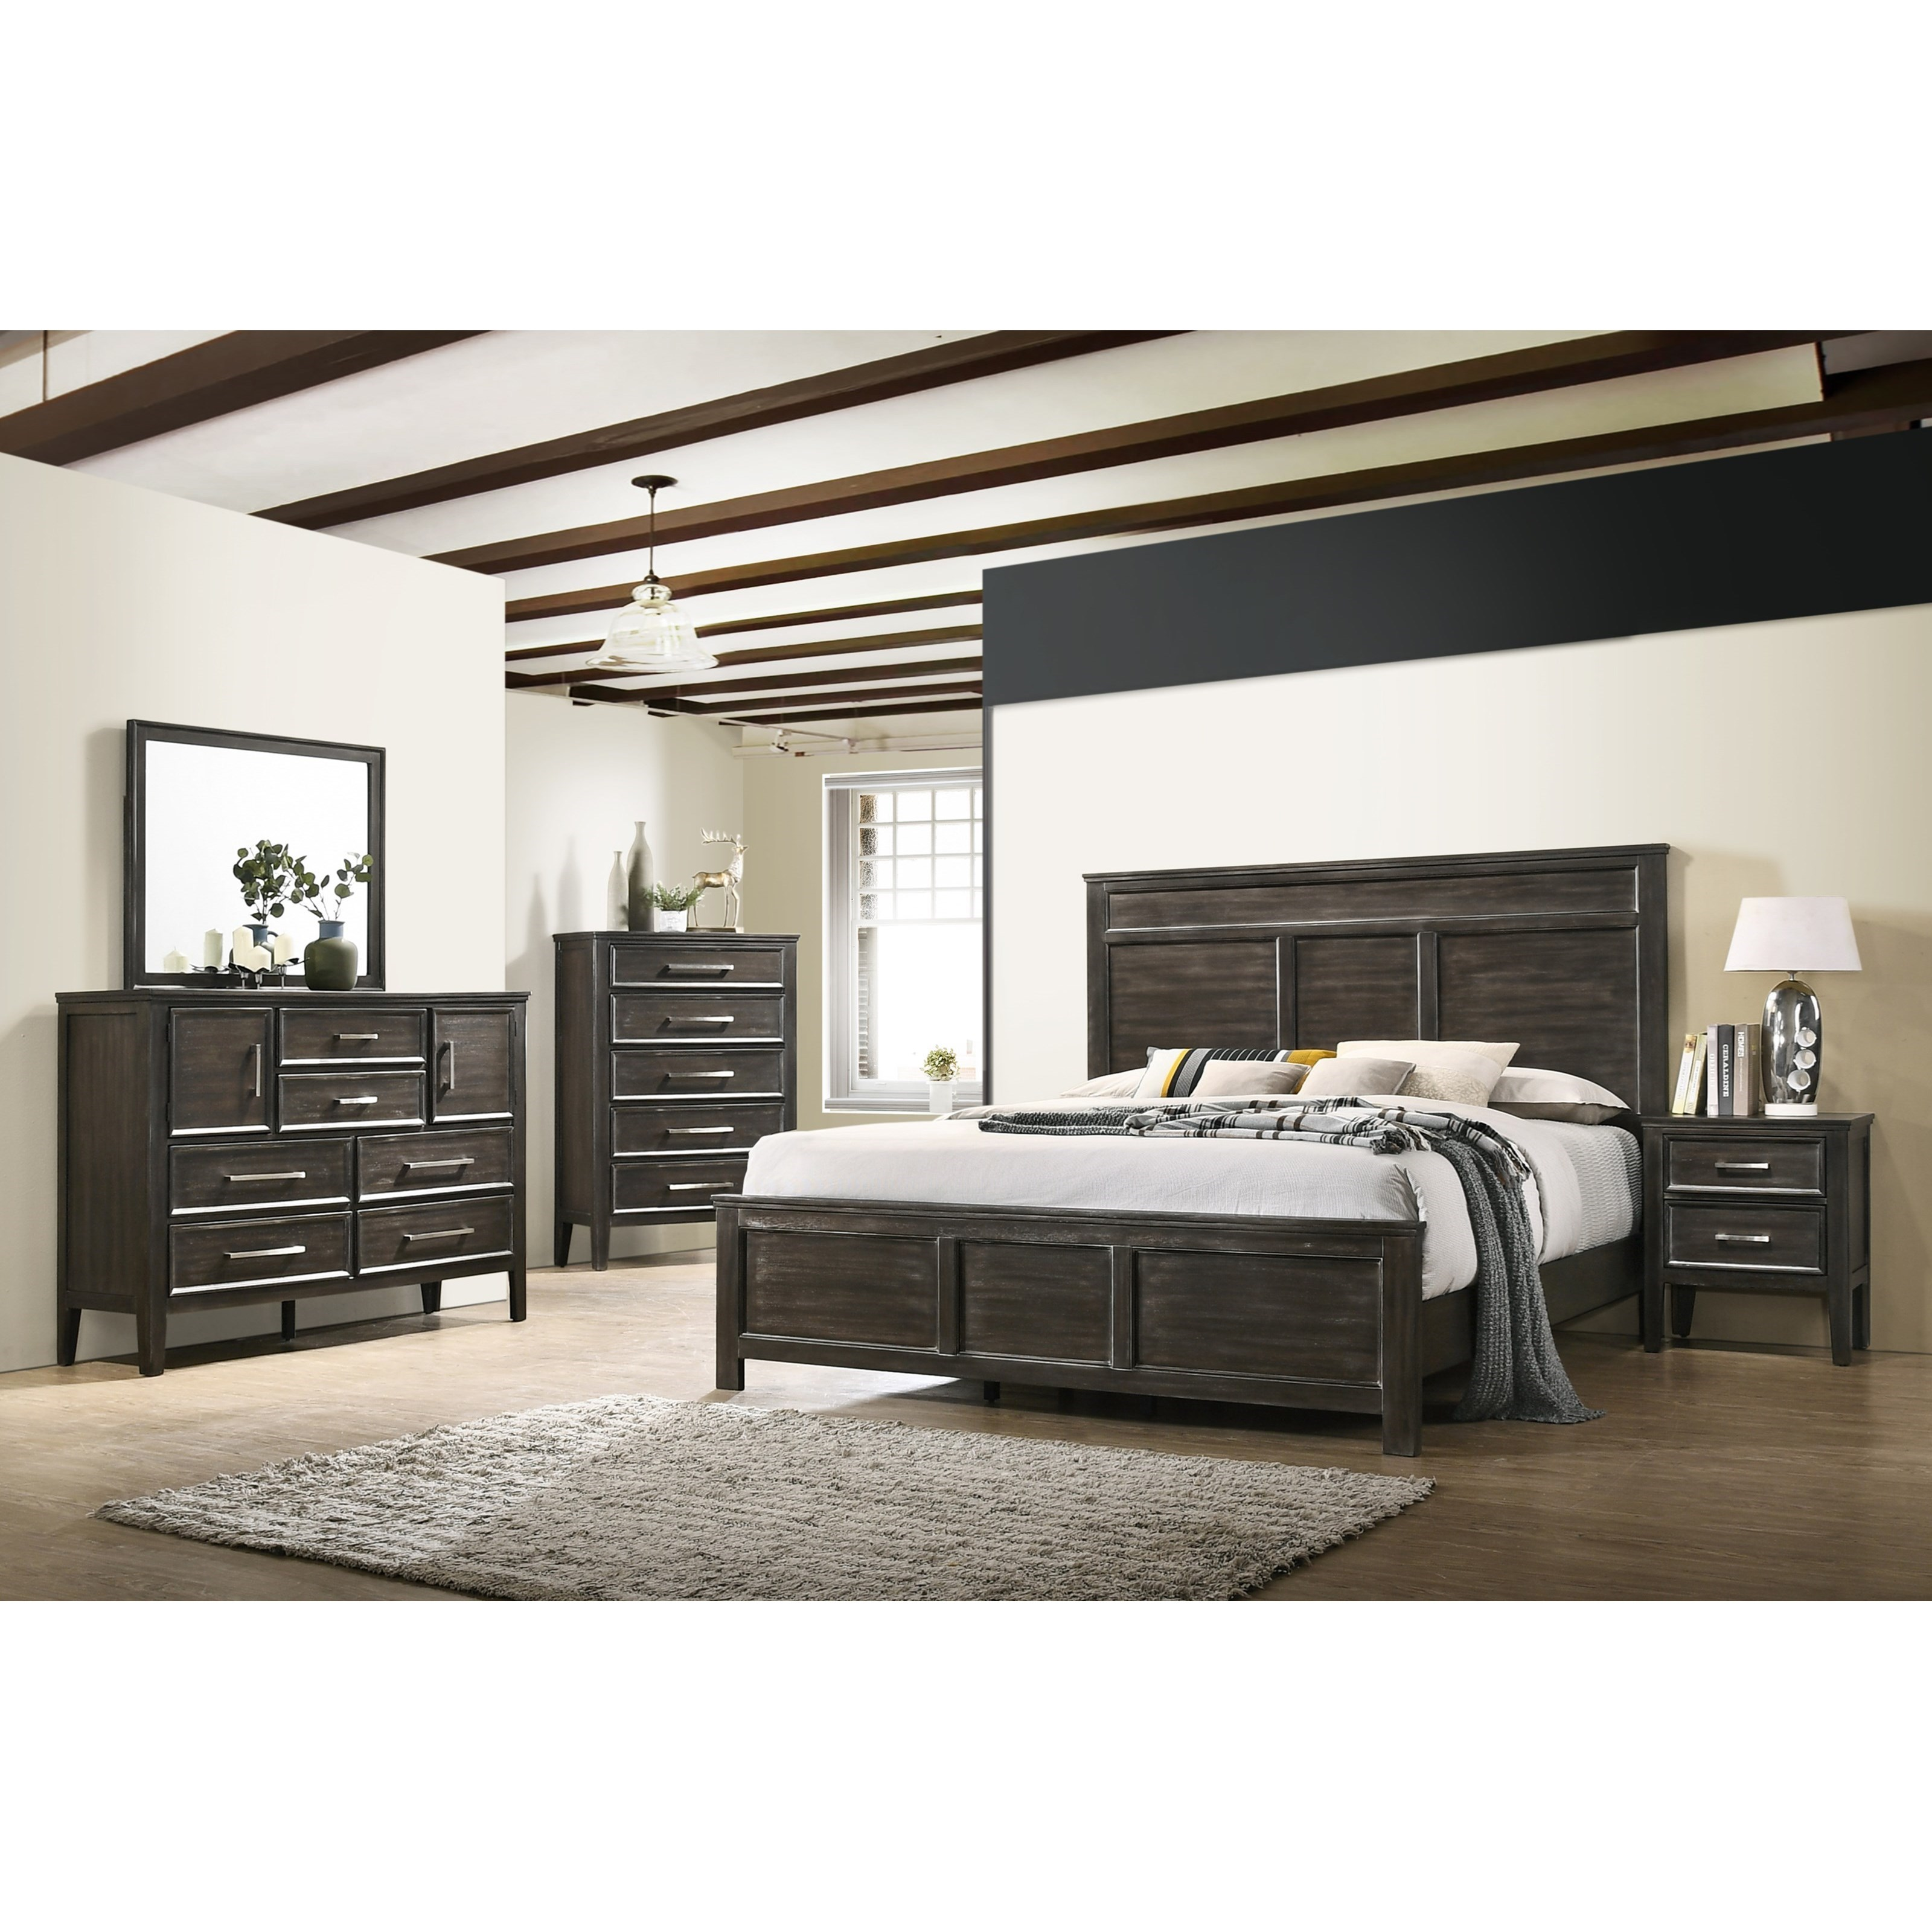 Andover King Bedroom Group by New Classic at H.L. Stephens